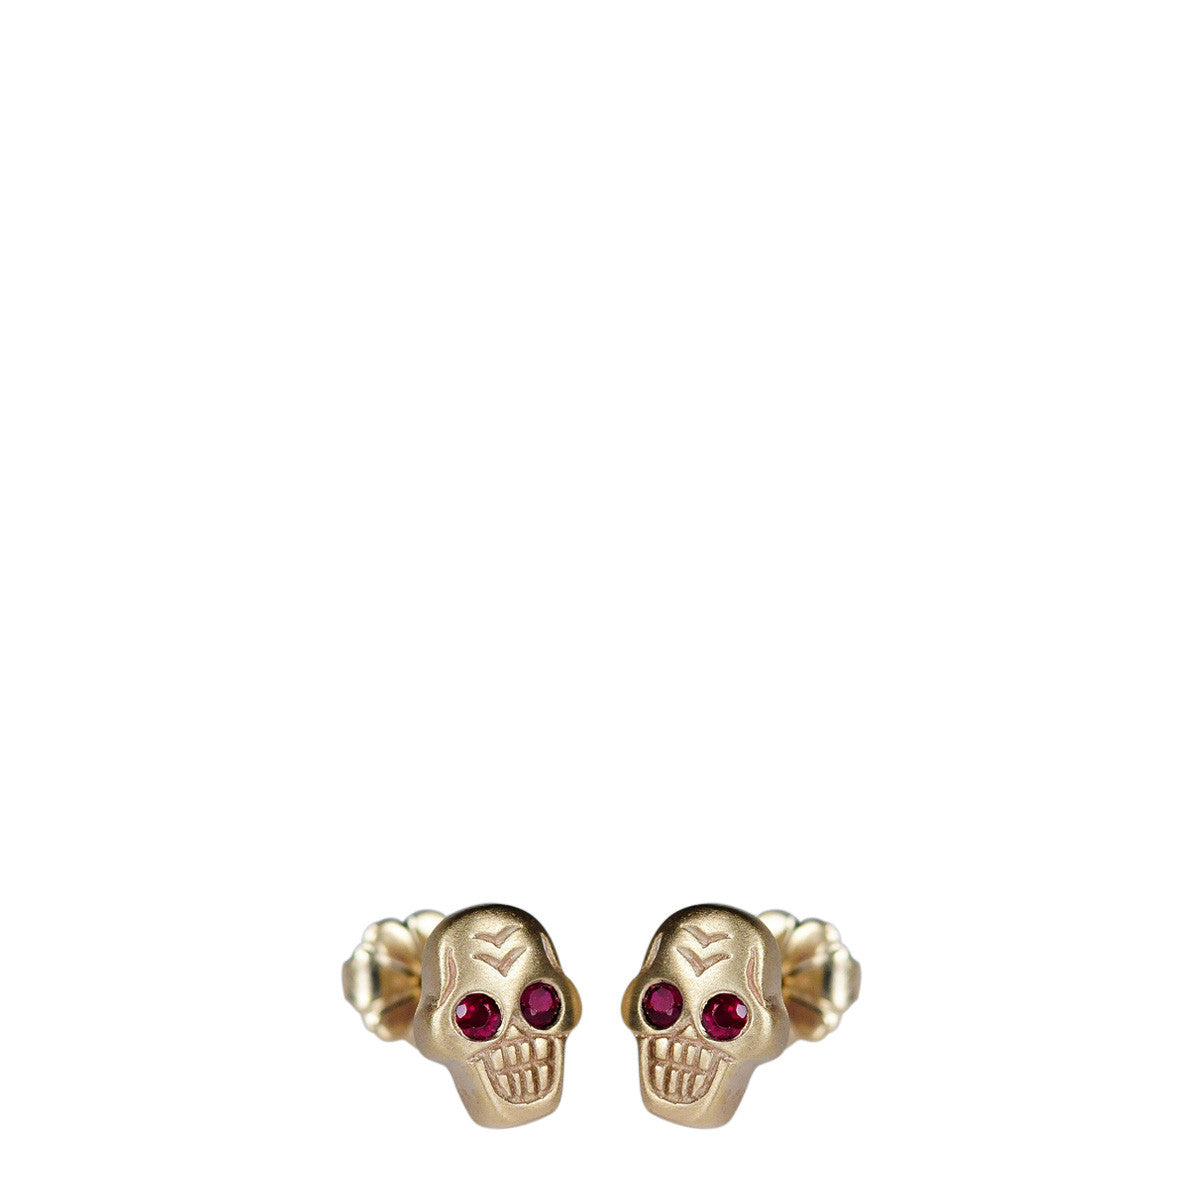 10K Gold Tiny Skull Stud Earrings with Rubies